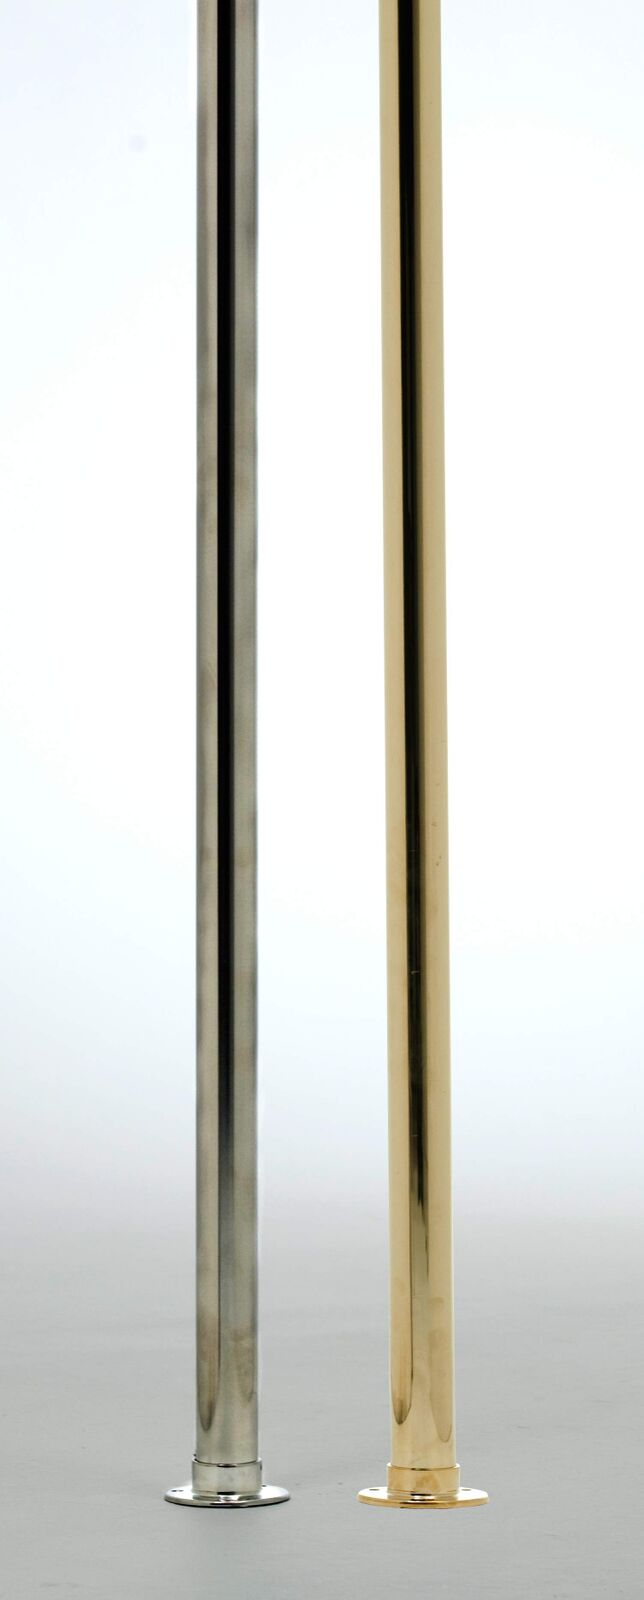 Permanent Stainless Steel [Static Pole]